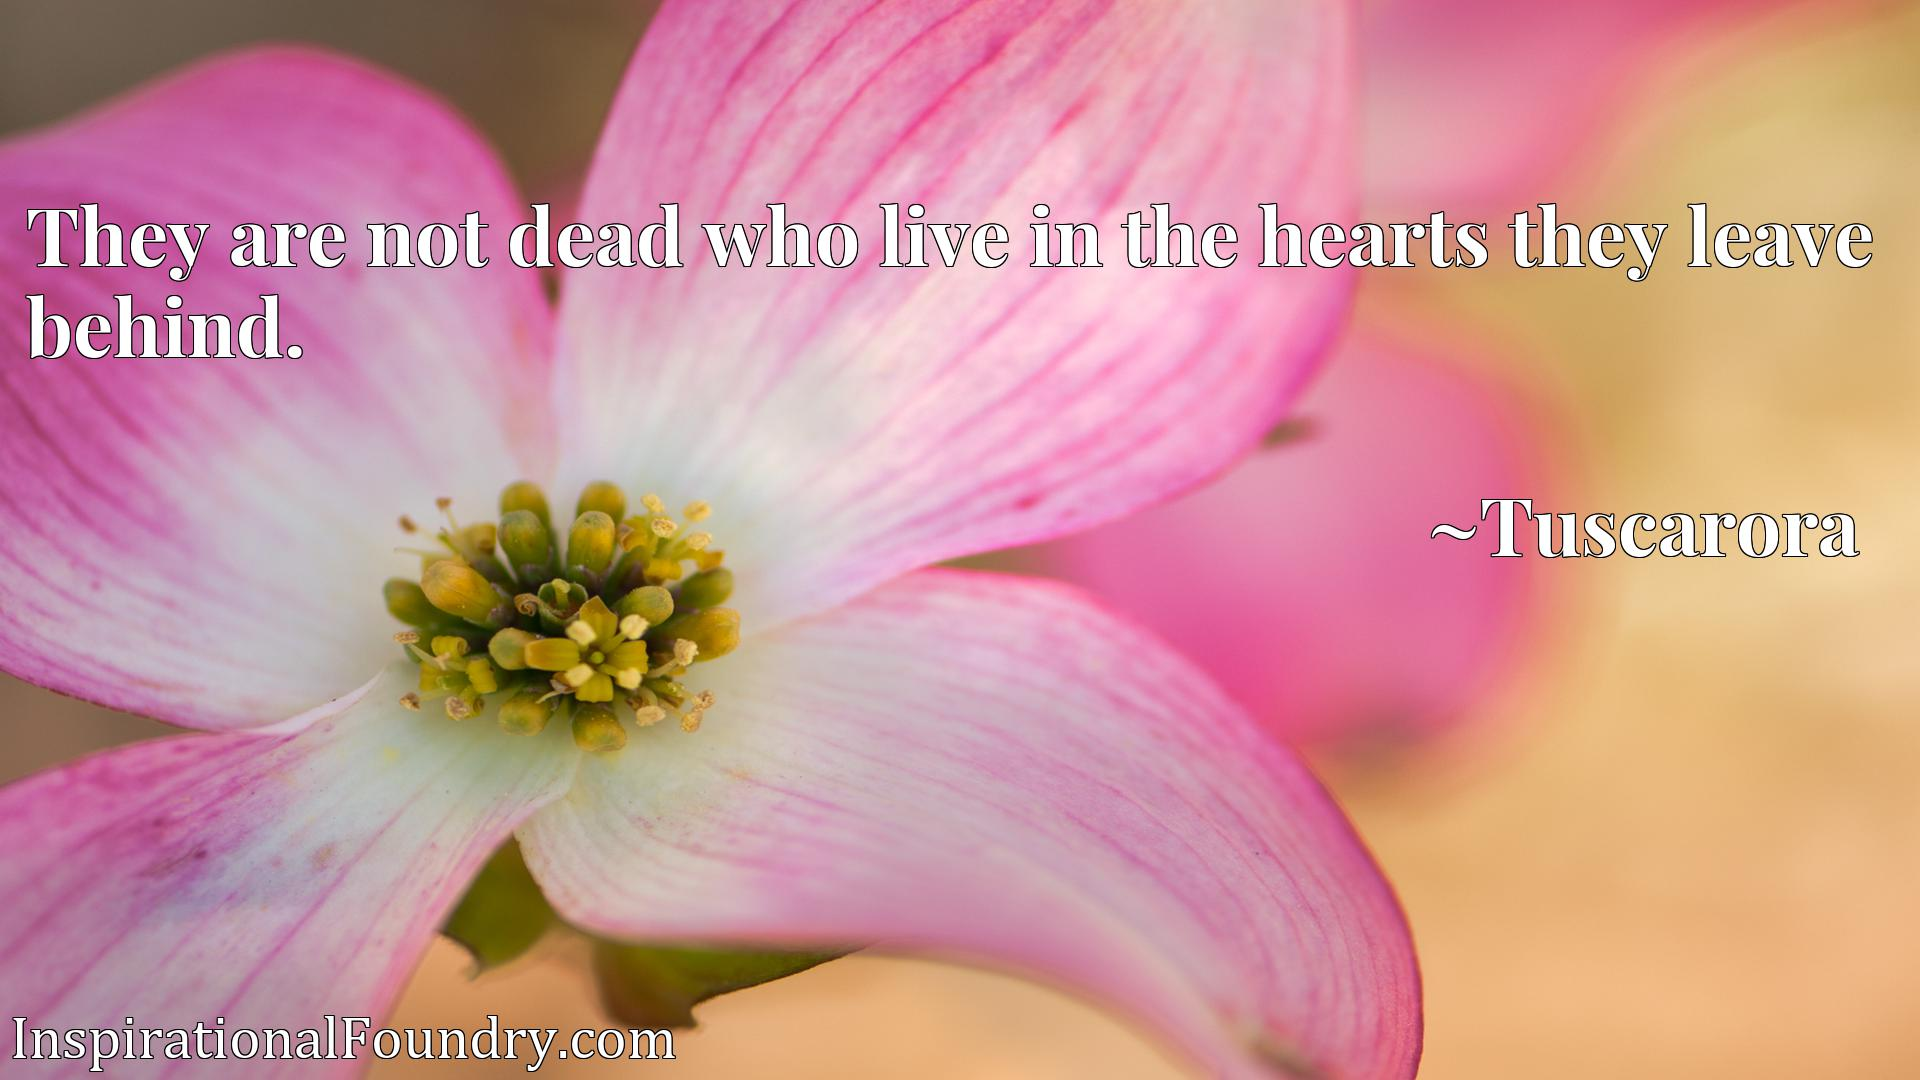 They are not dead who live in the hearts they leave behind.